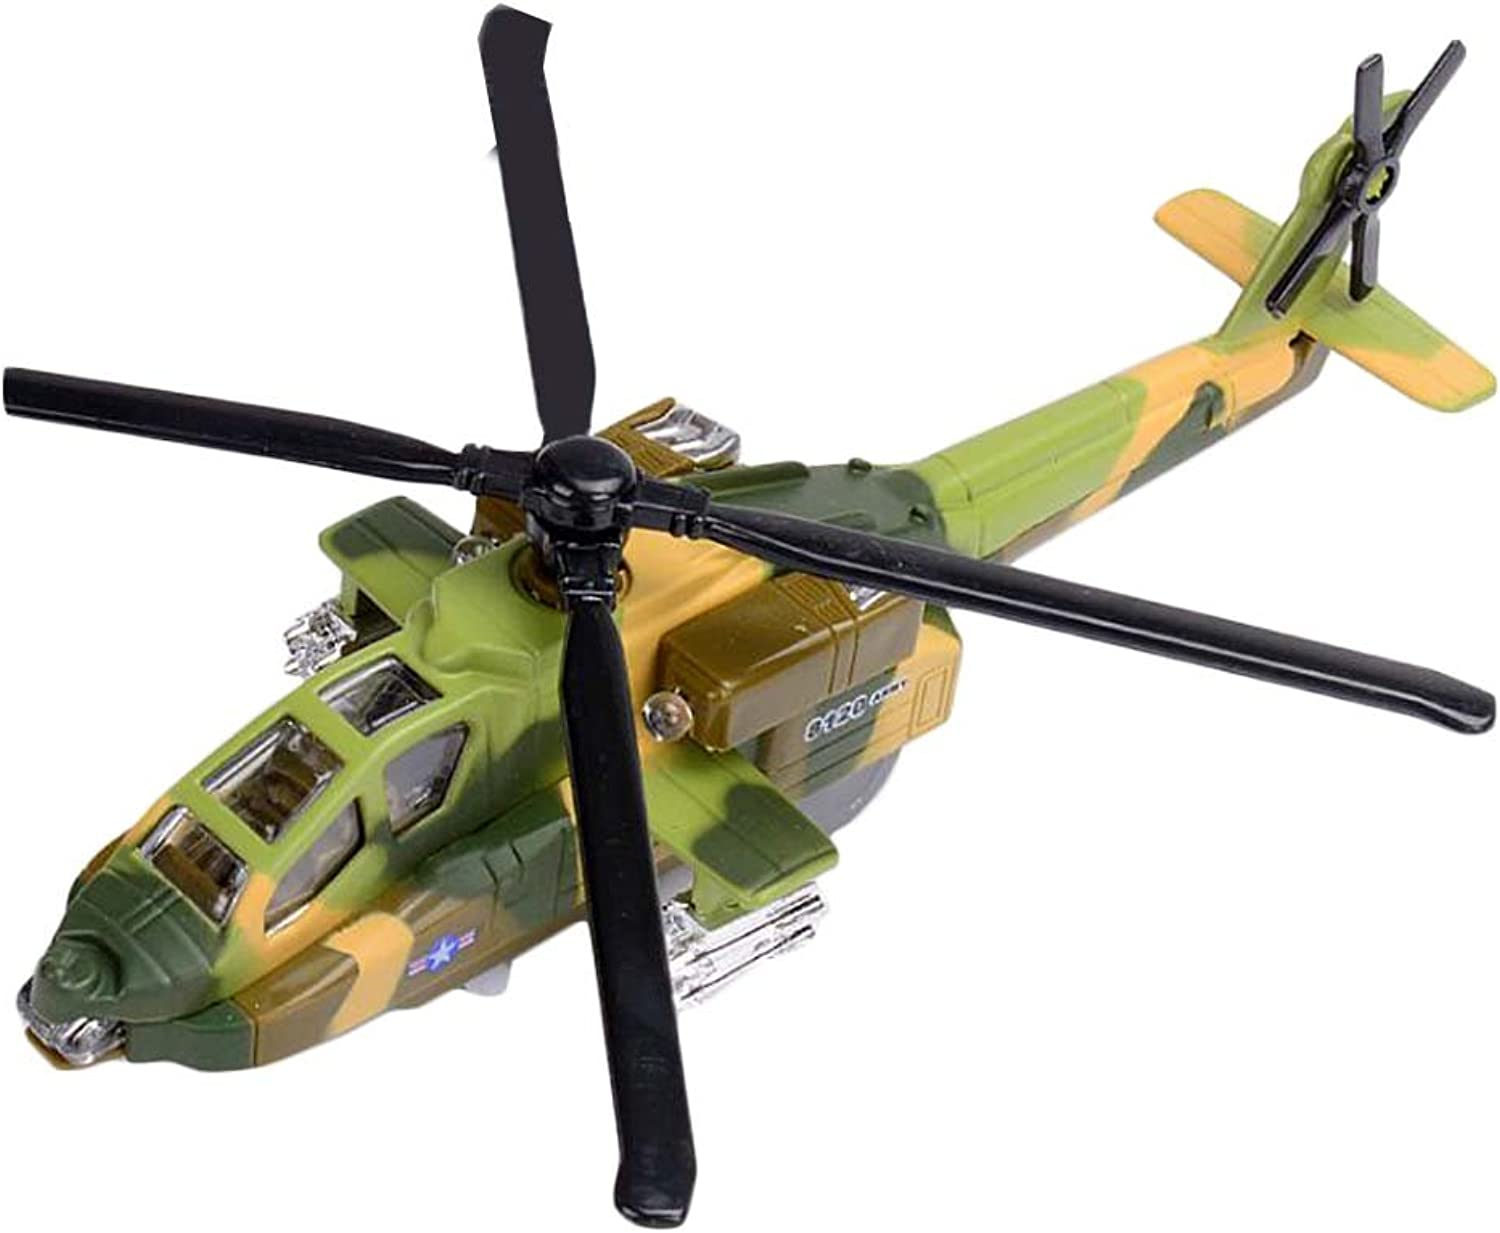 Helicopter Toys Have Sound,Light Function Home Decoration